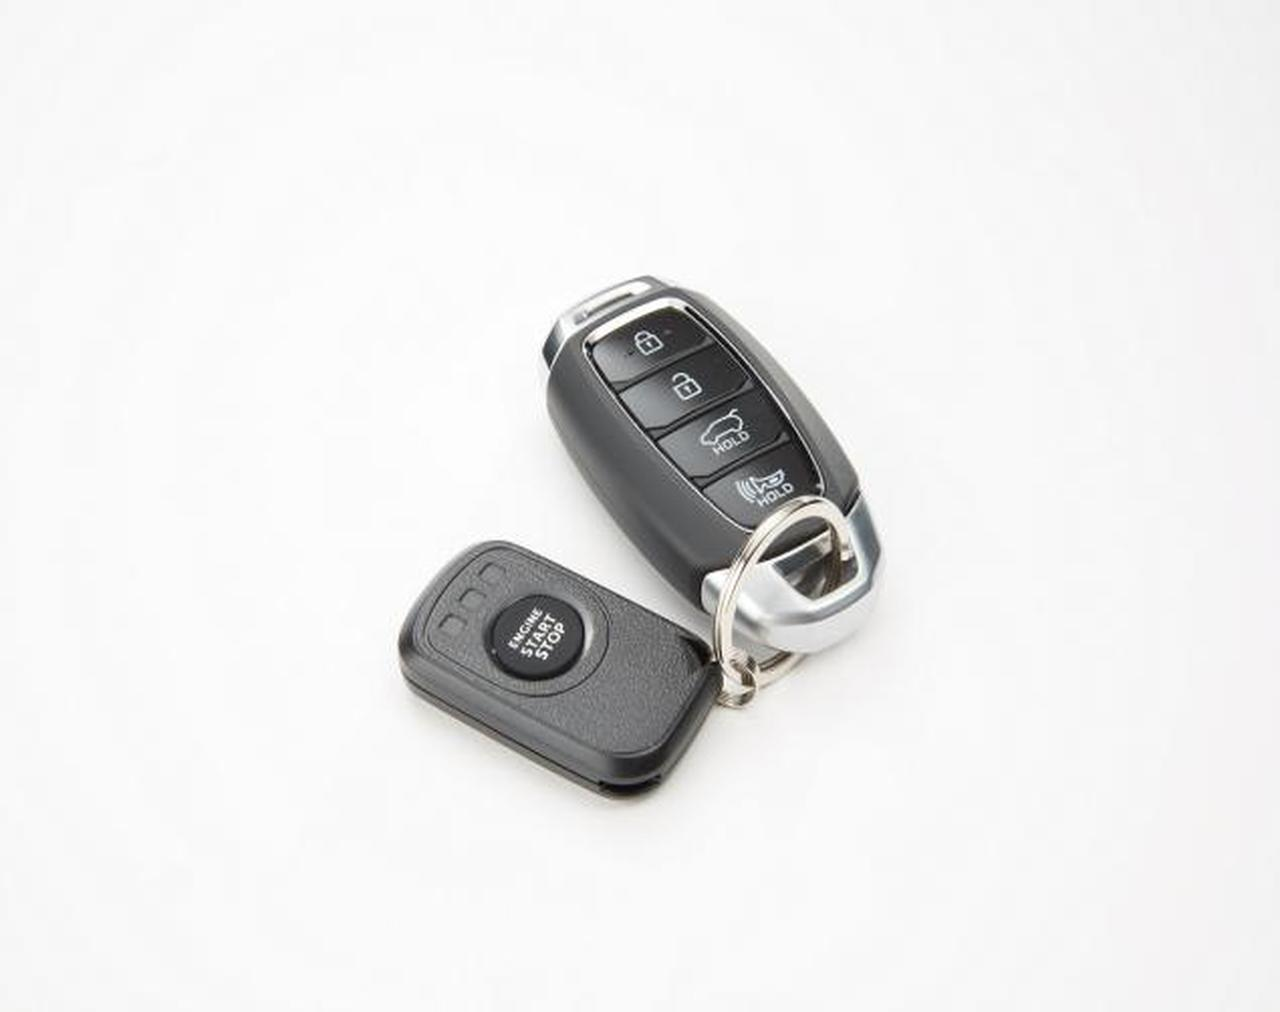 HYUNDAI Genuine 00056-ADU10 Remote Start Transmitter